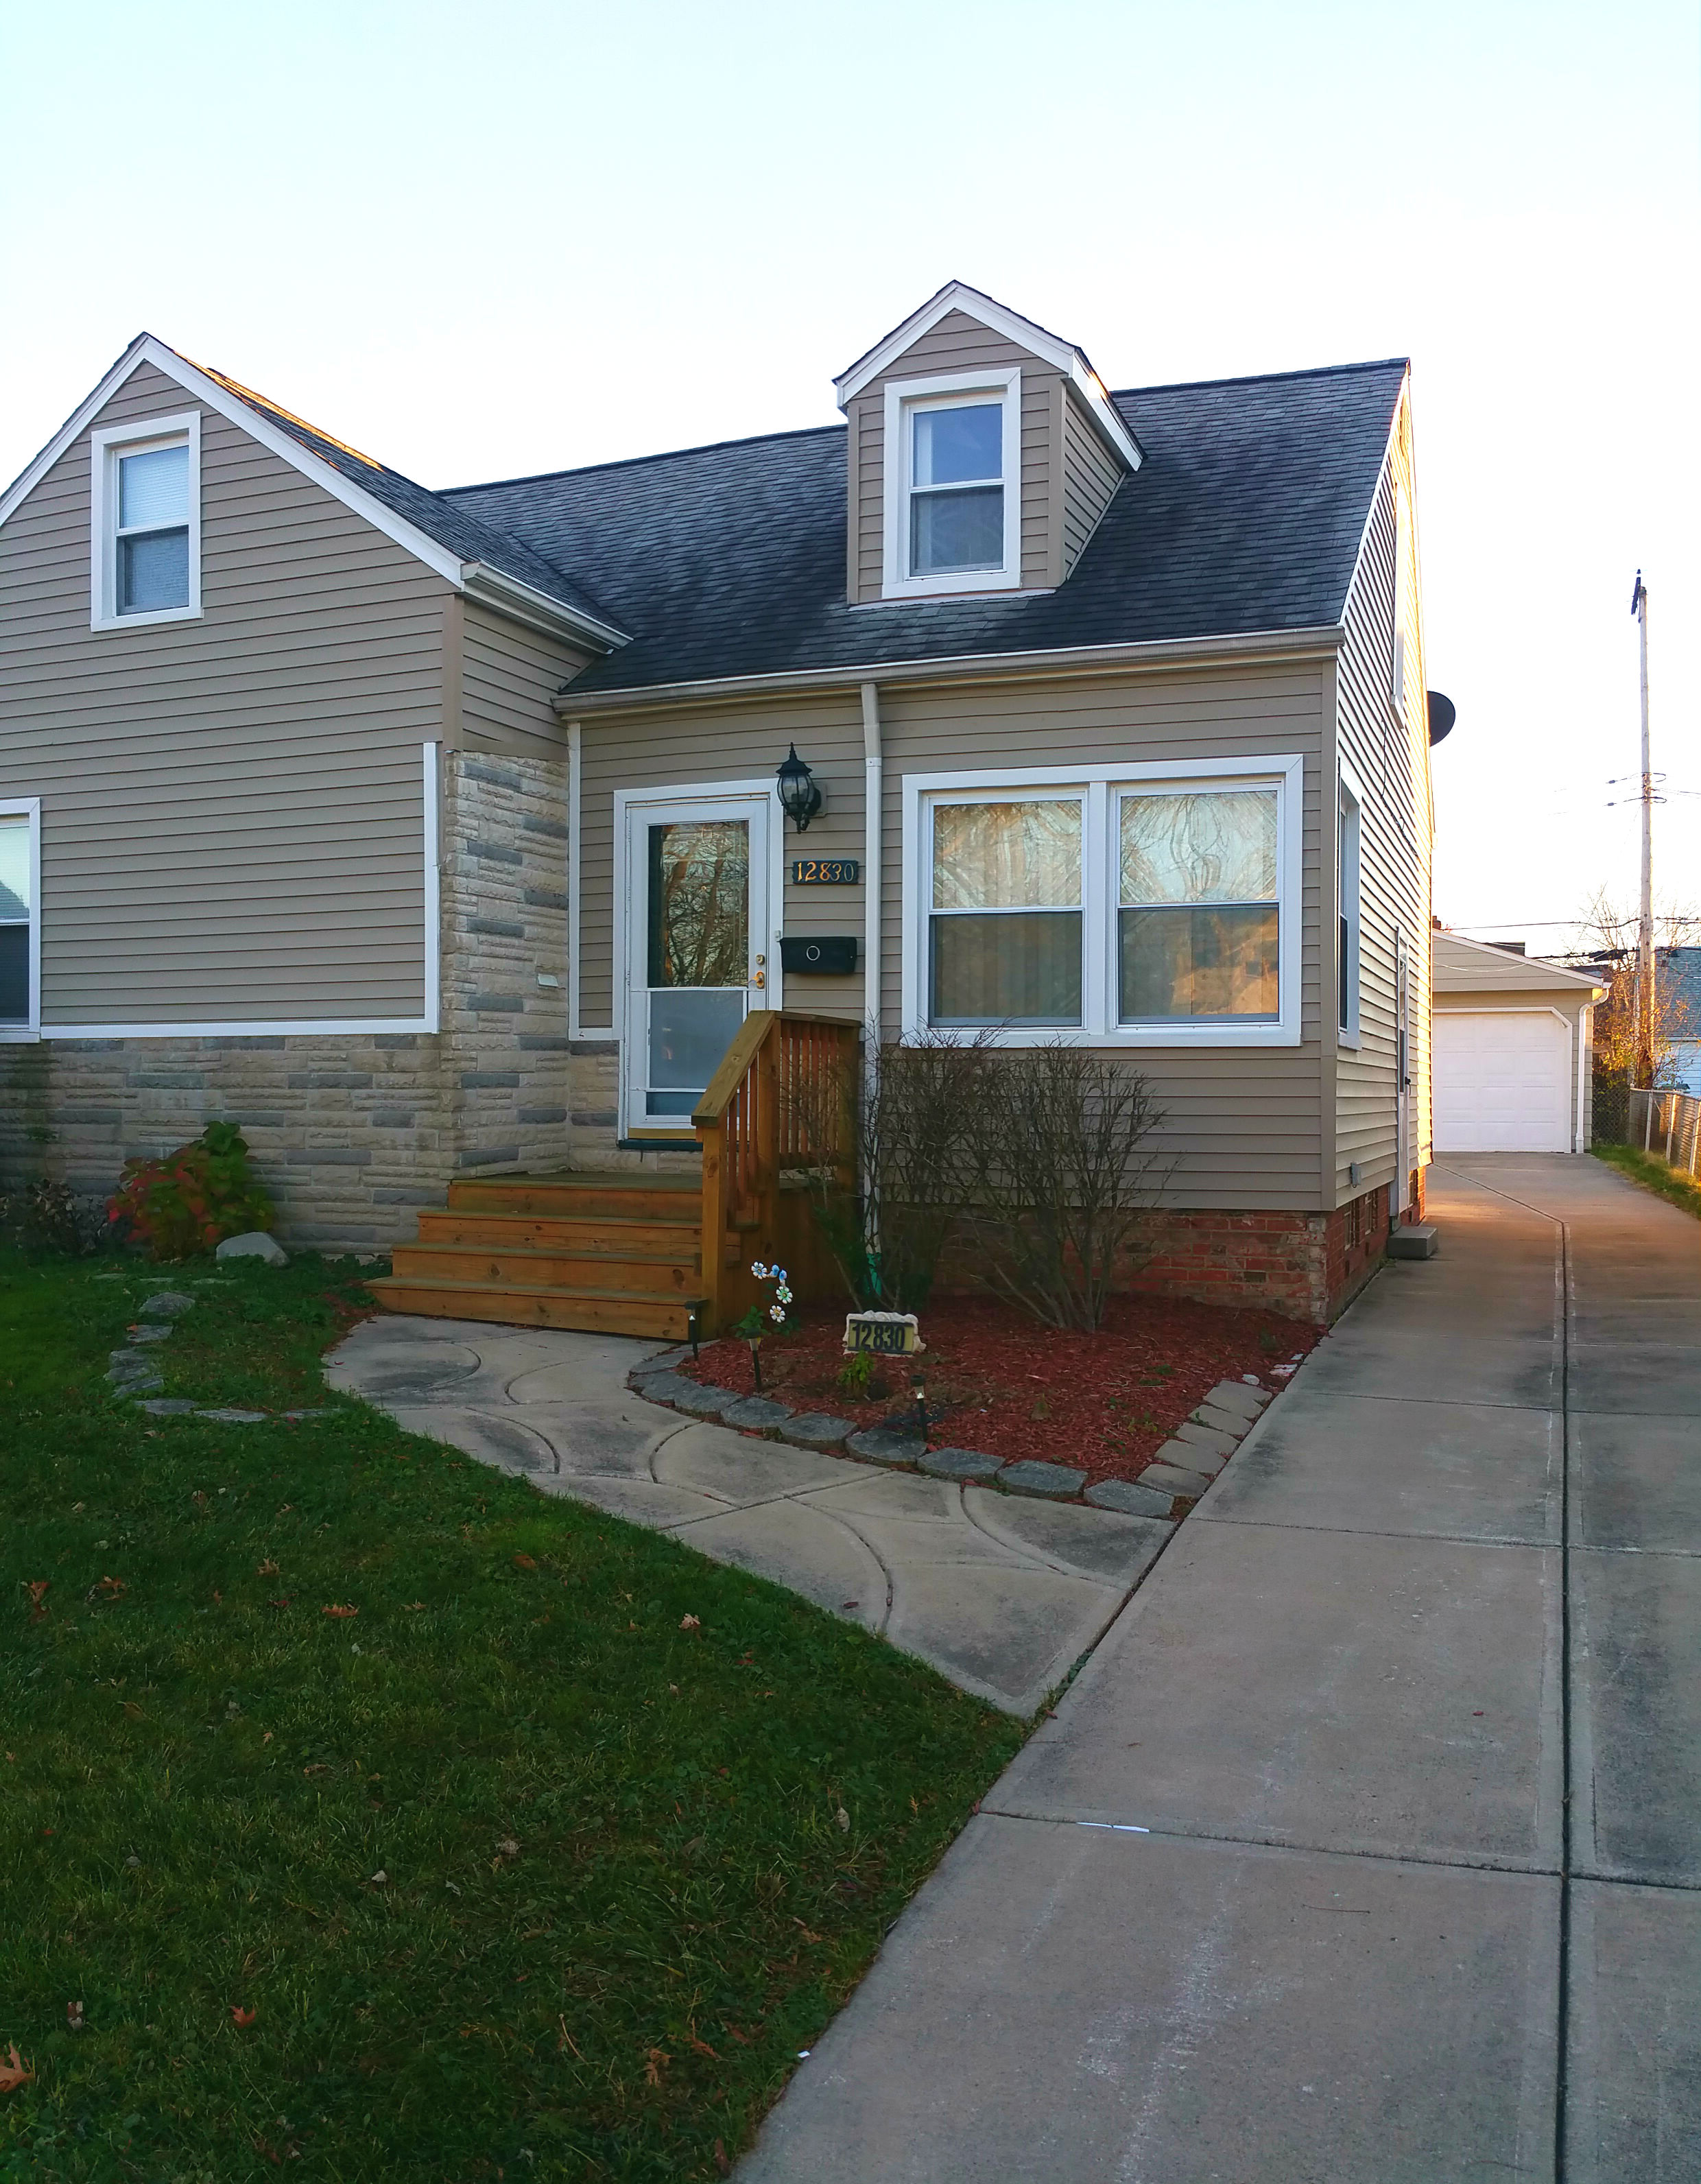 12830 Orme Rd., Garfield Hts. | 3 bed 1 bath | 1,215 Sq. Ft. | $ 61, 000